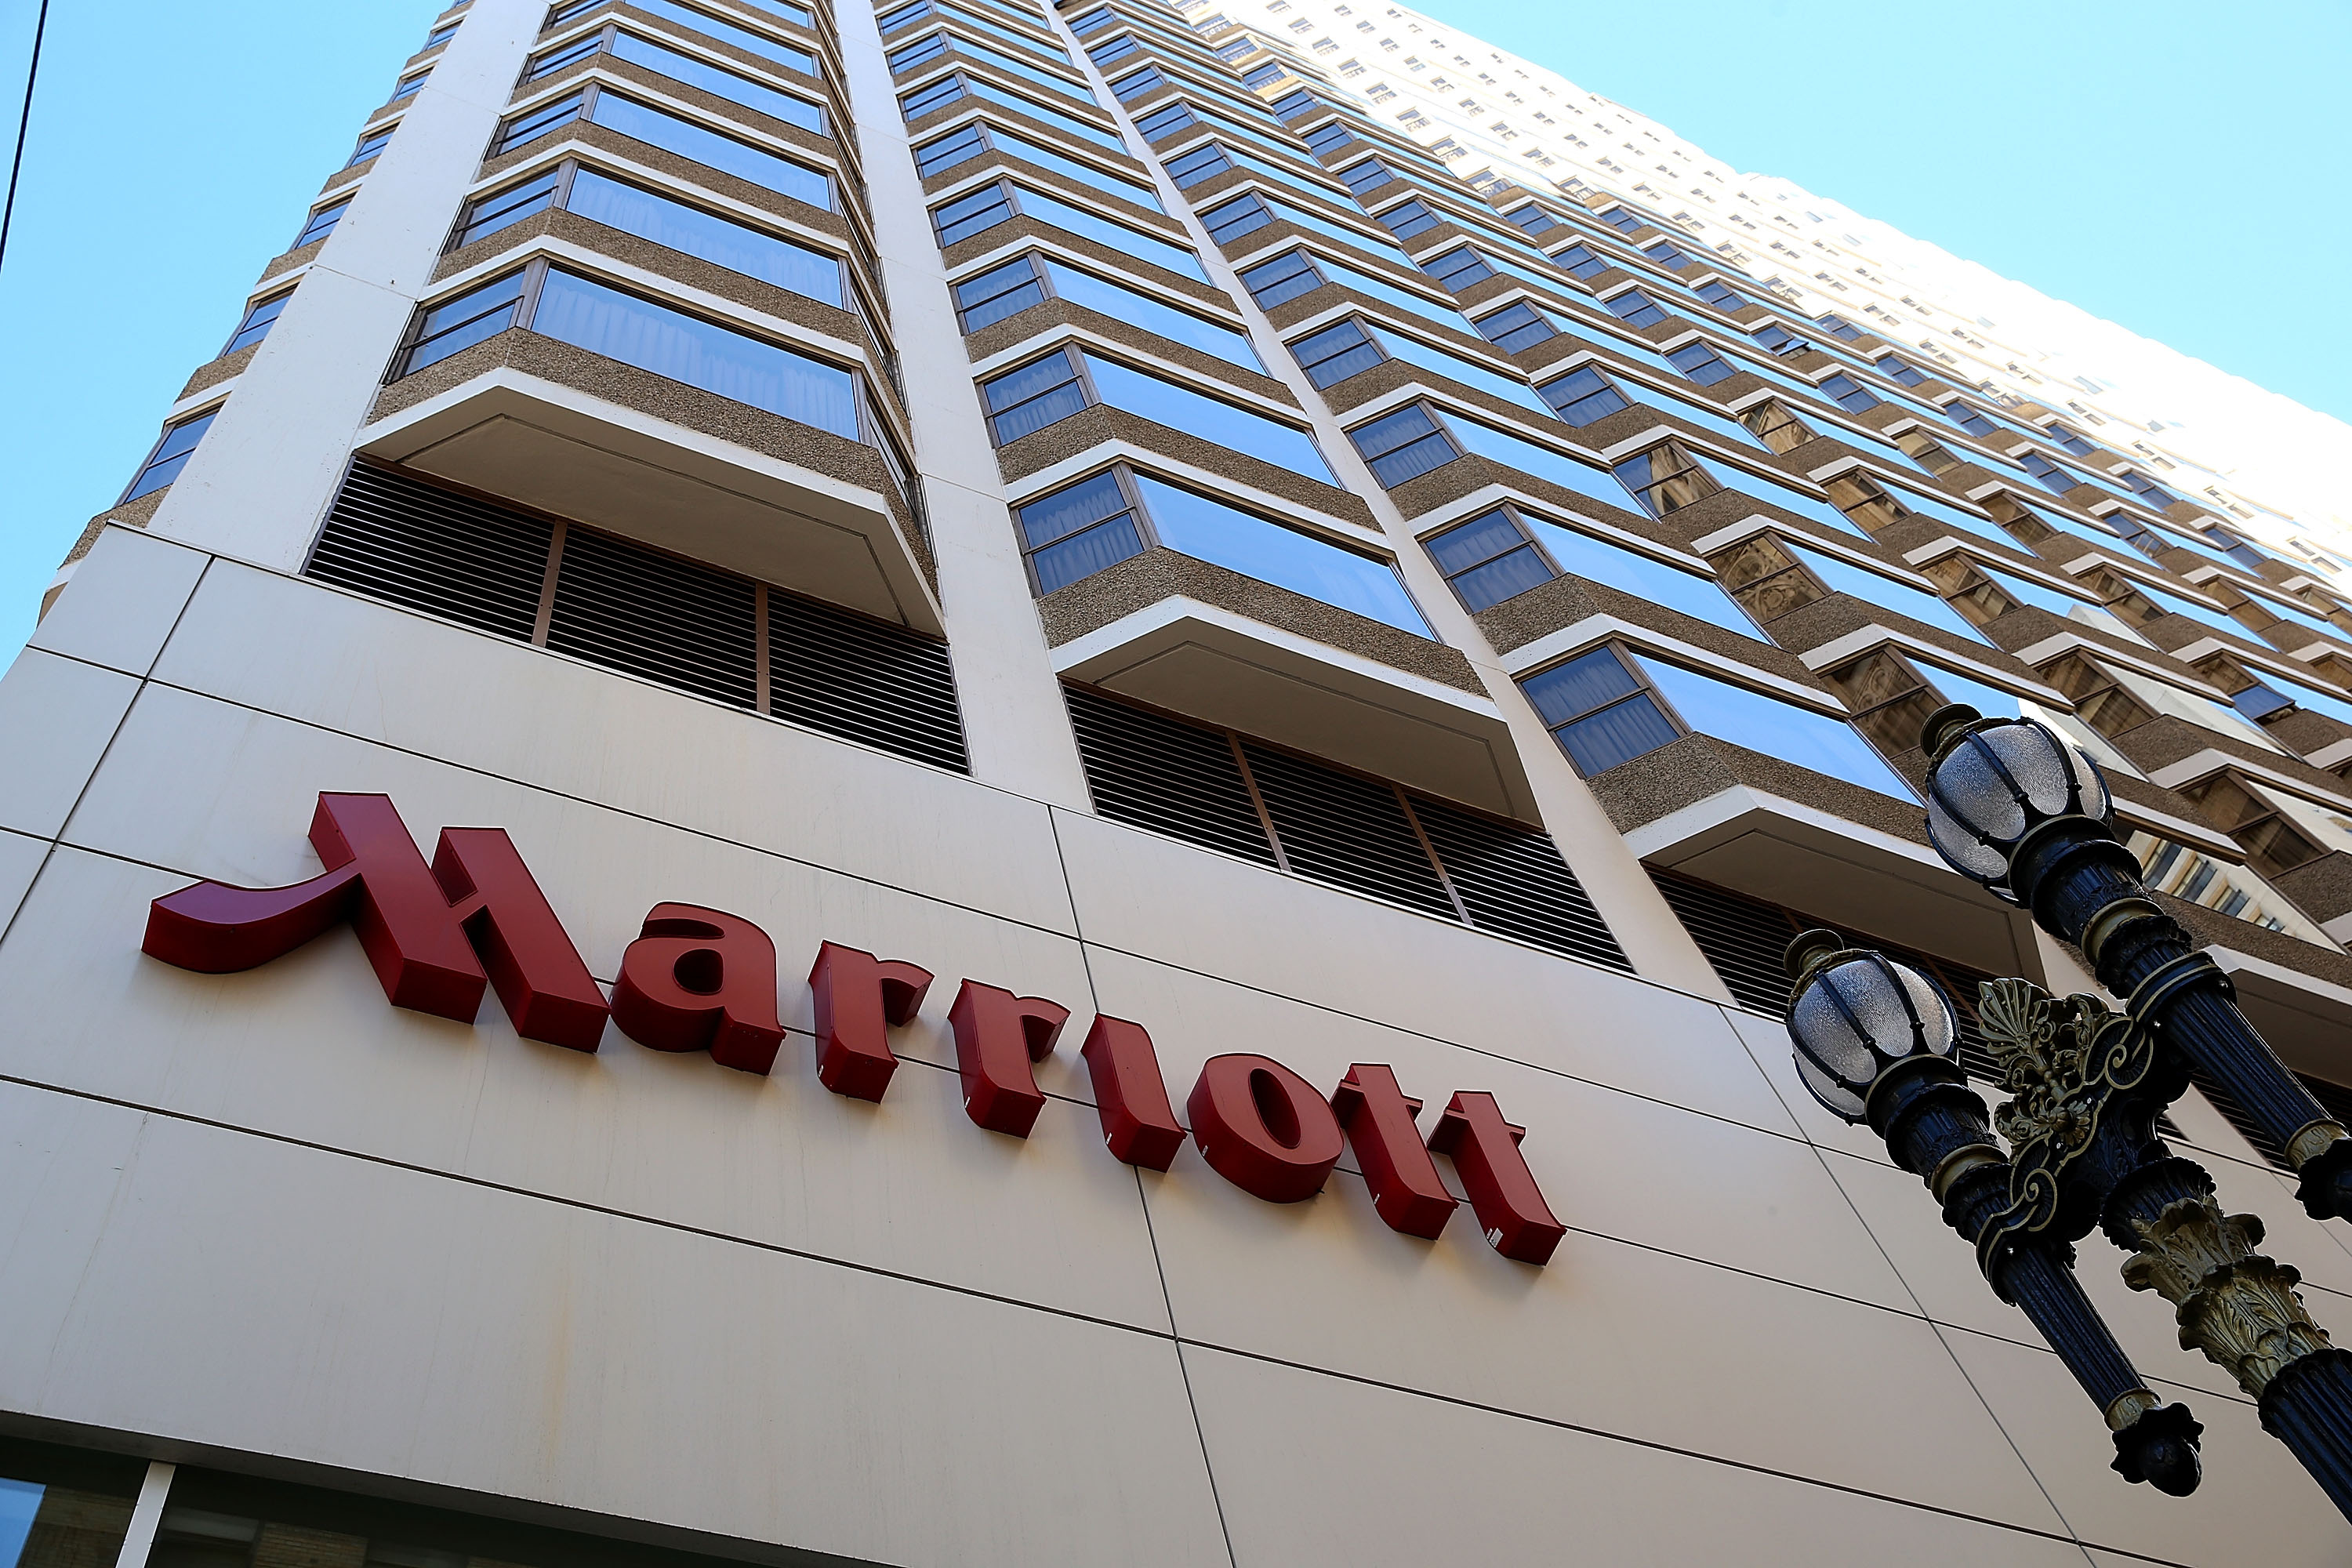 Marriott Acquires Starwood Hotels For $12.2 Billion